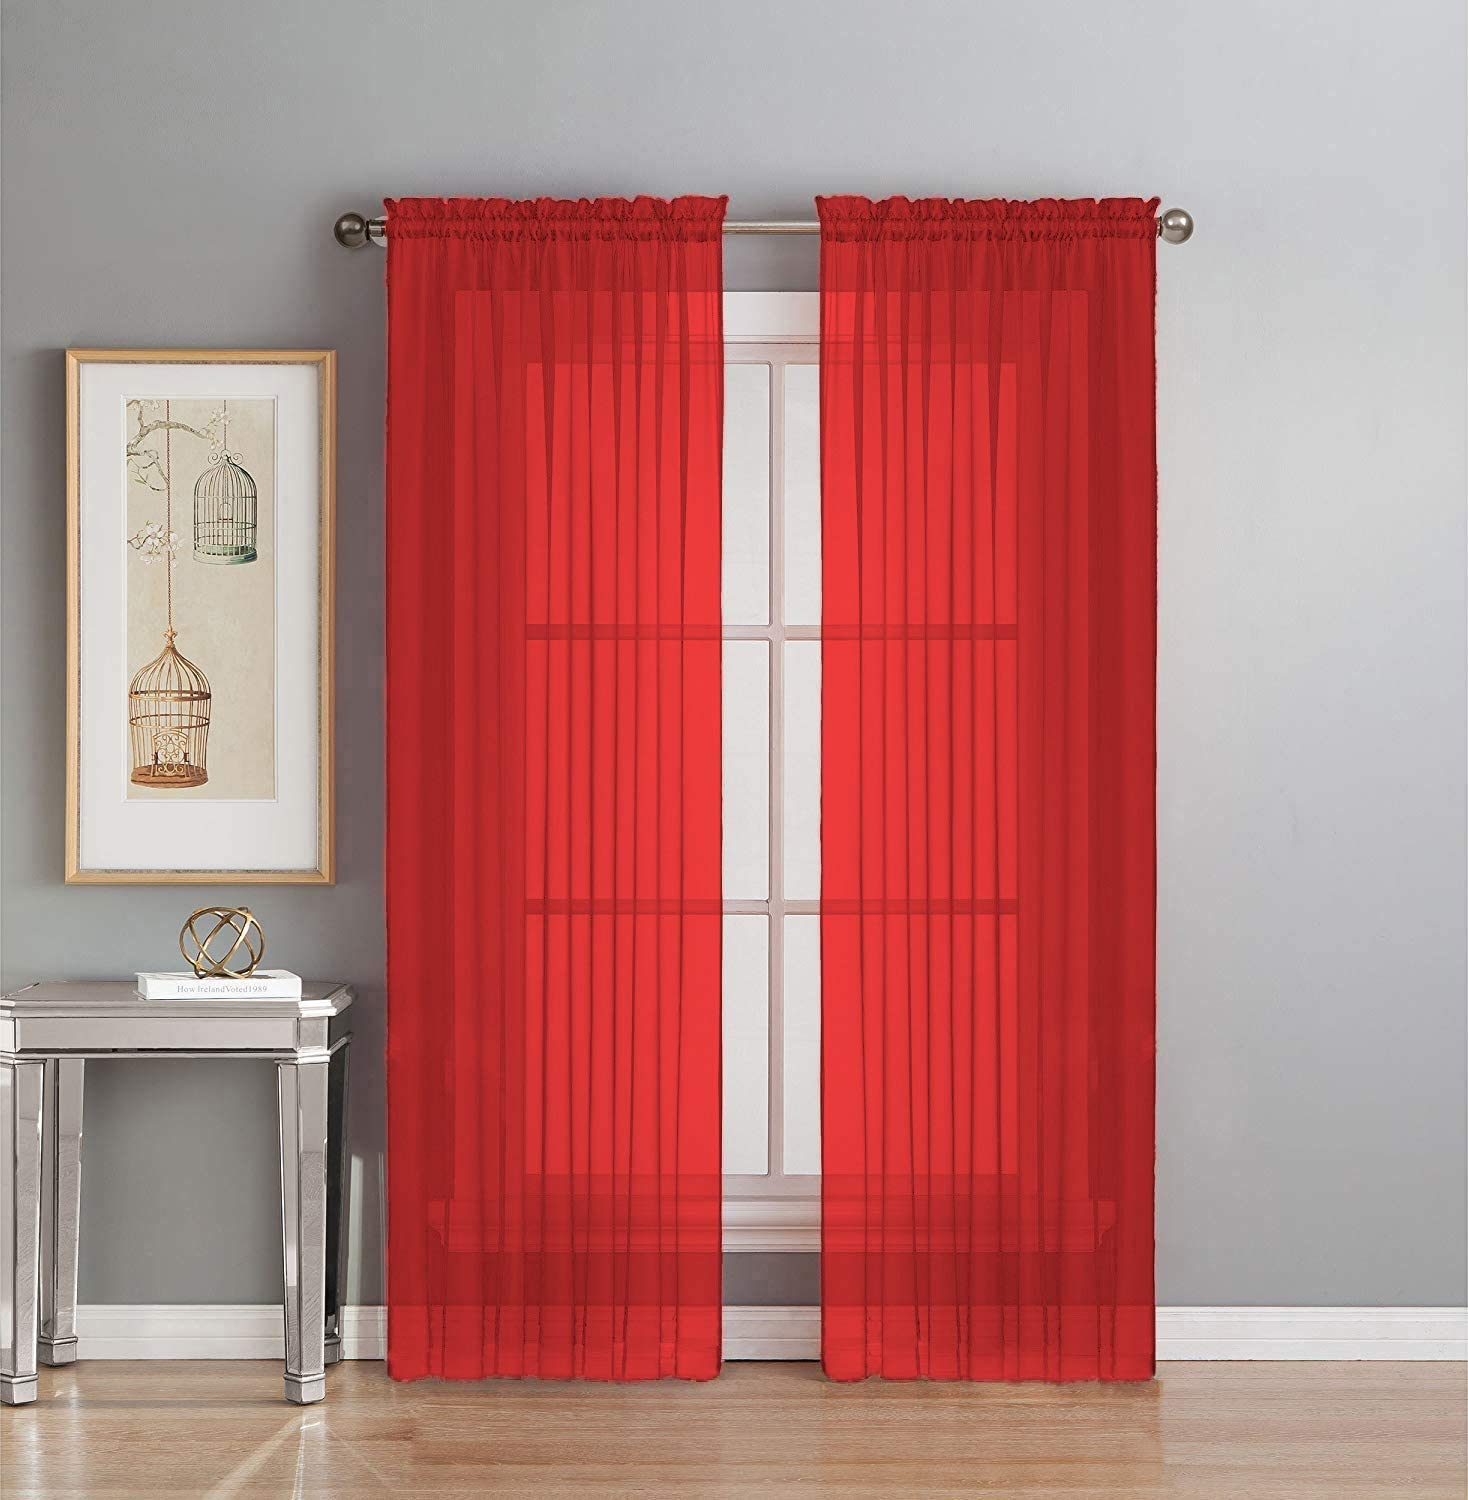 """Interior Trends 2 Piece Fully Stitched Sheer Voile Window Panel Curtain Drape Set (63"""" Long, Red)"""